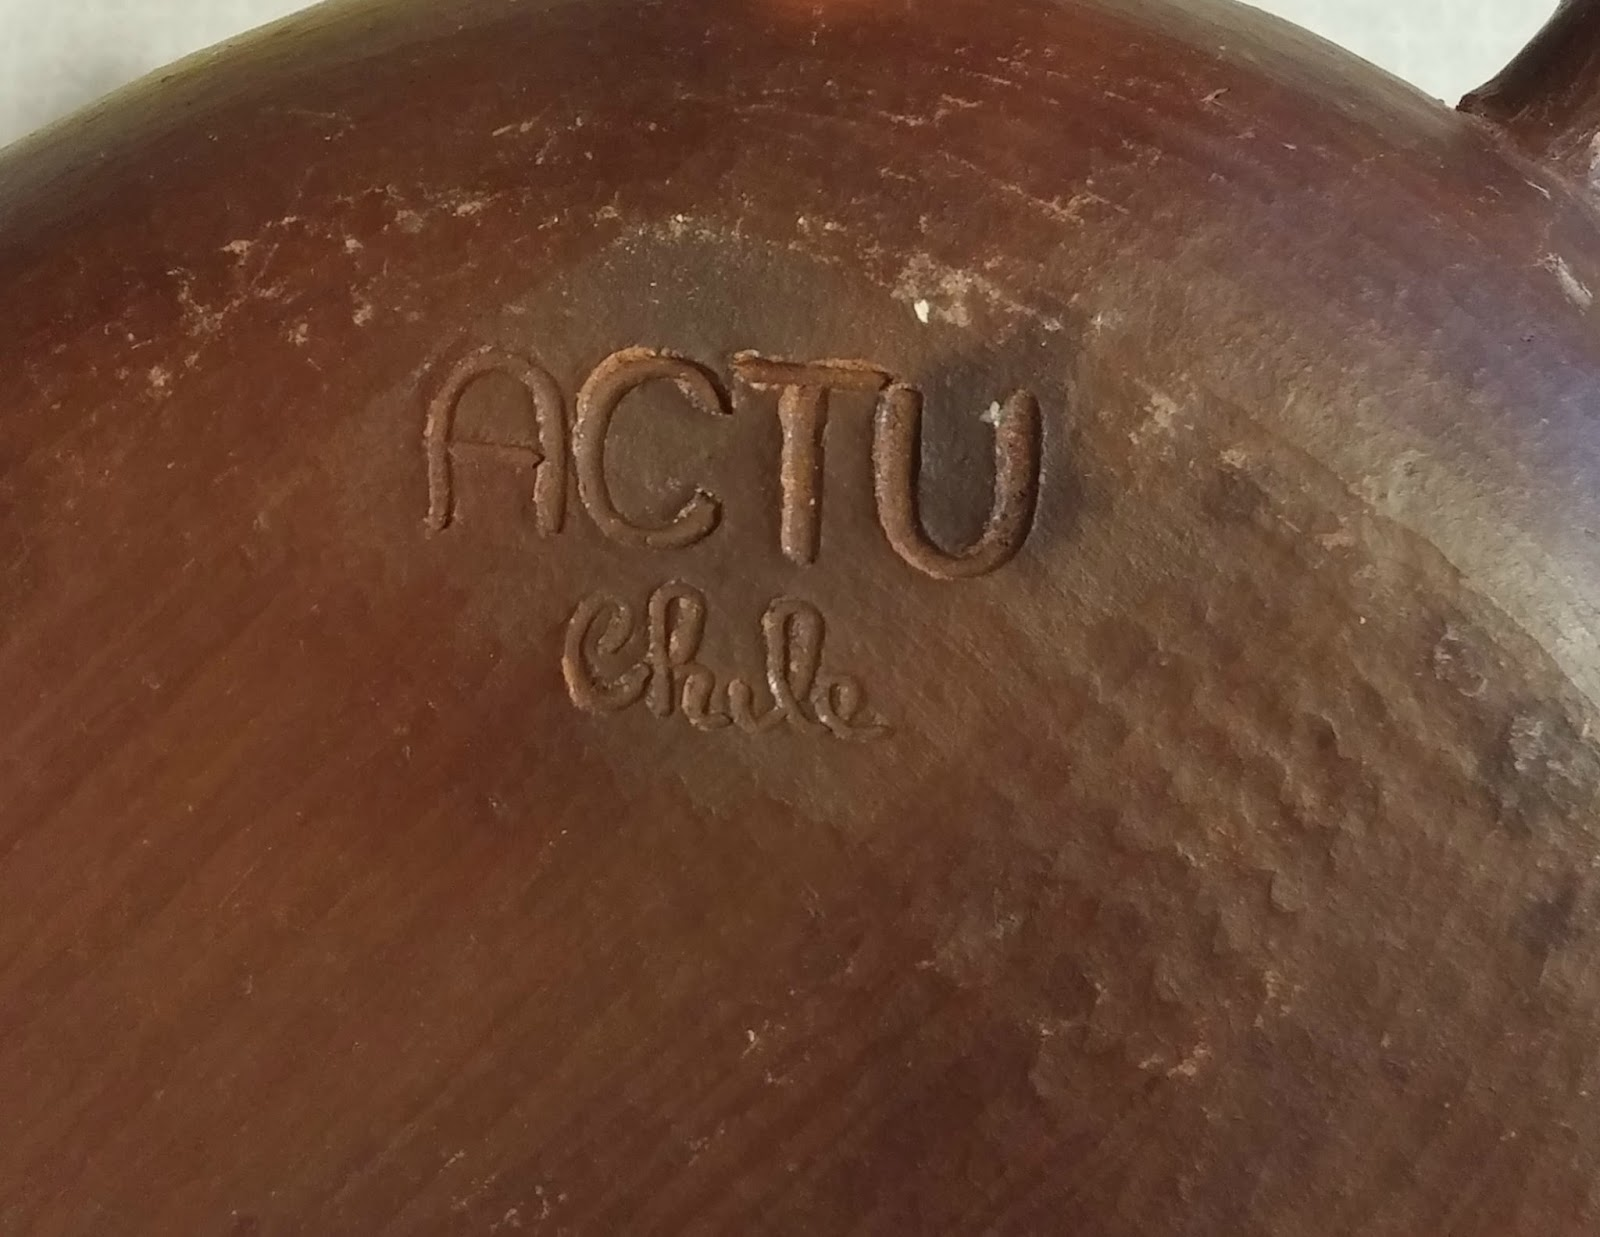 vintage pottery made in Chile